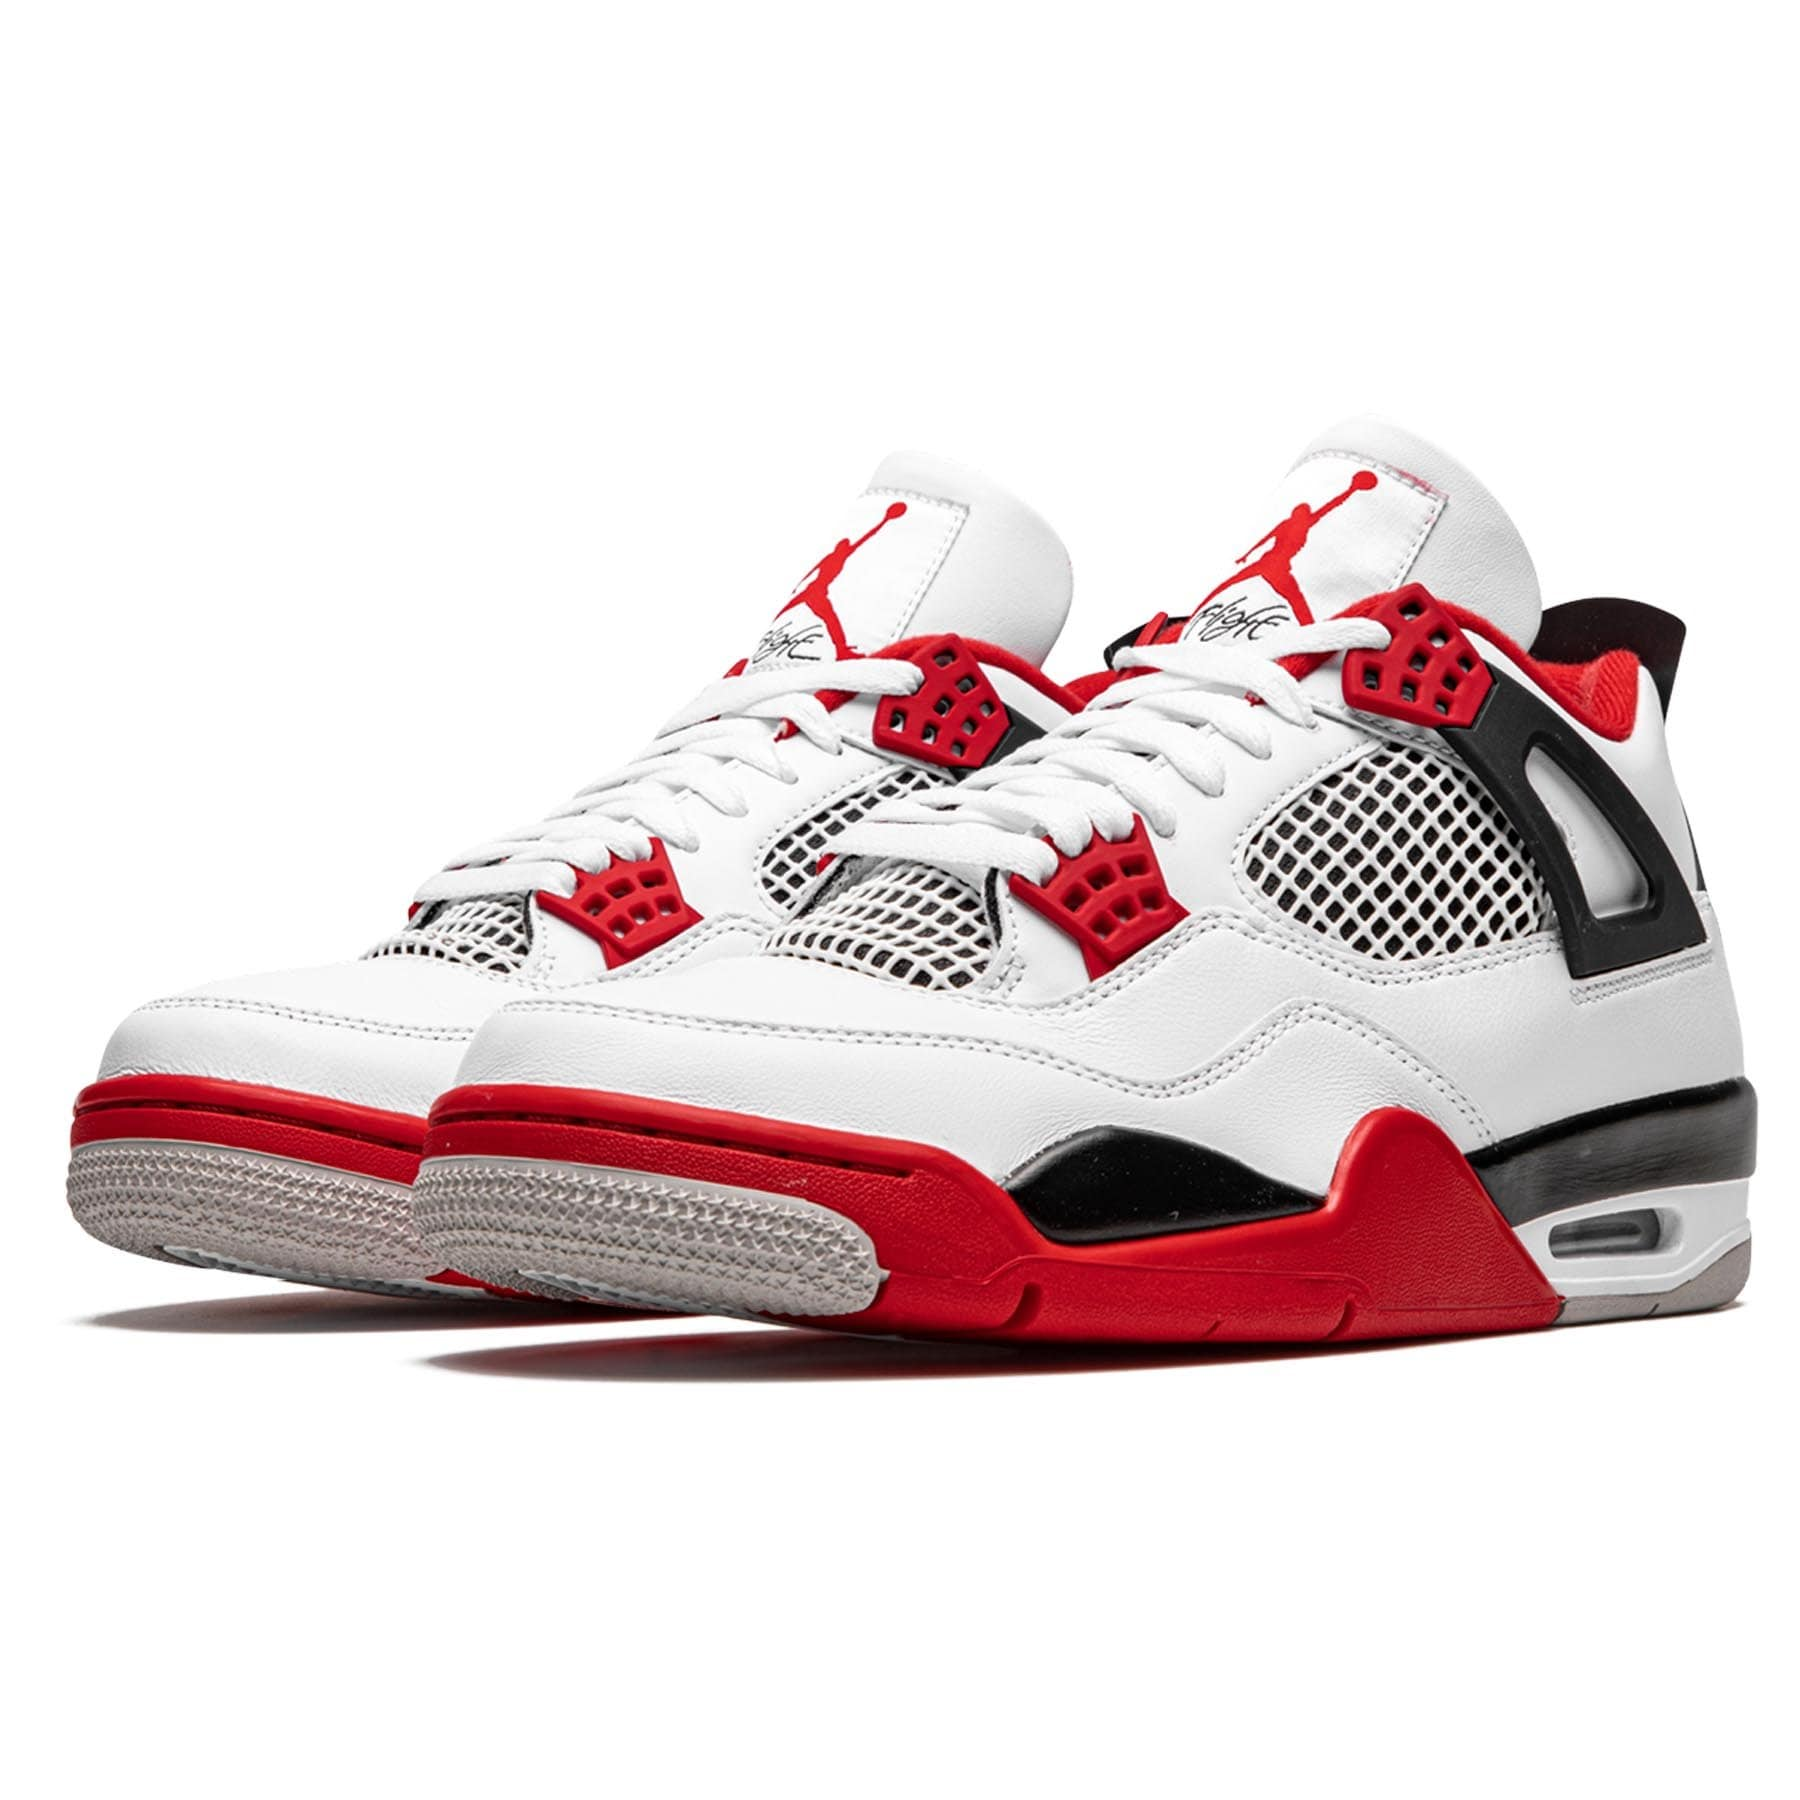 Air Jordan 4 Retro OG 'Fire Red' 2020 - Kick Game